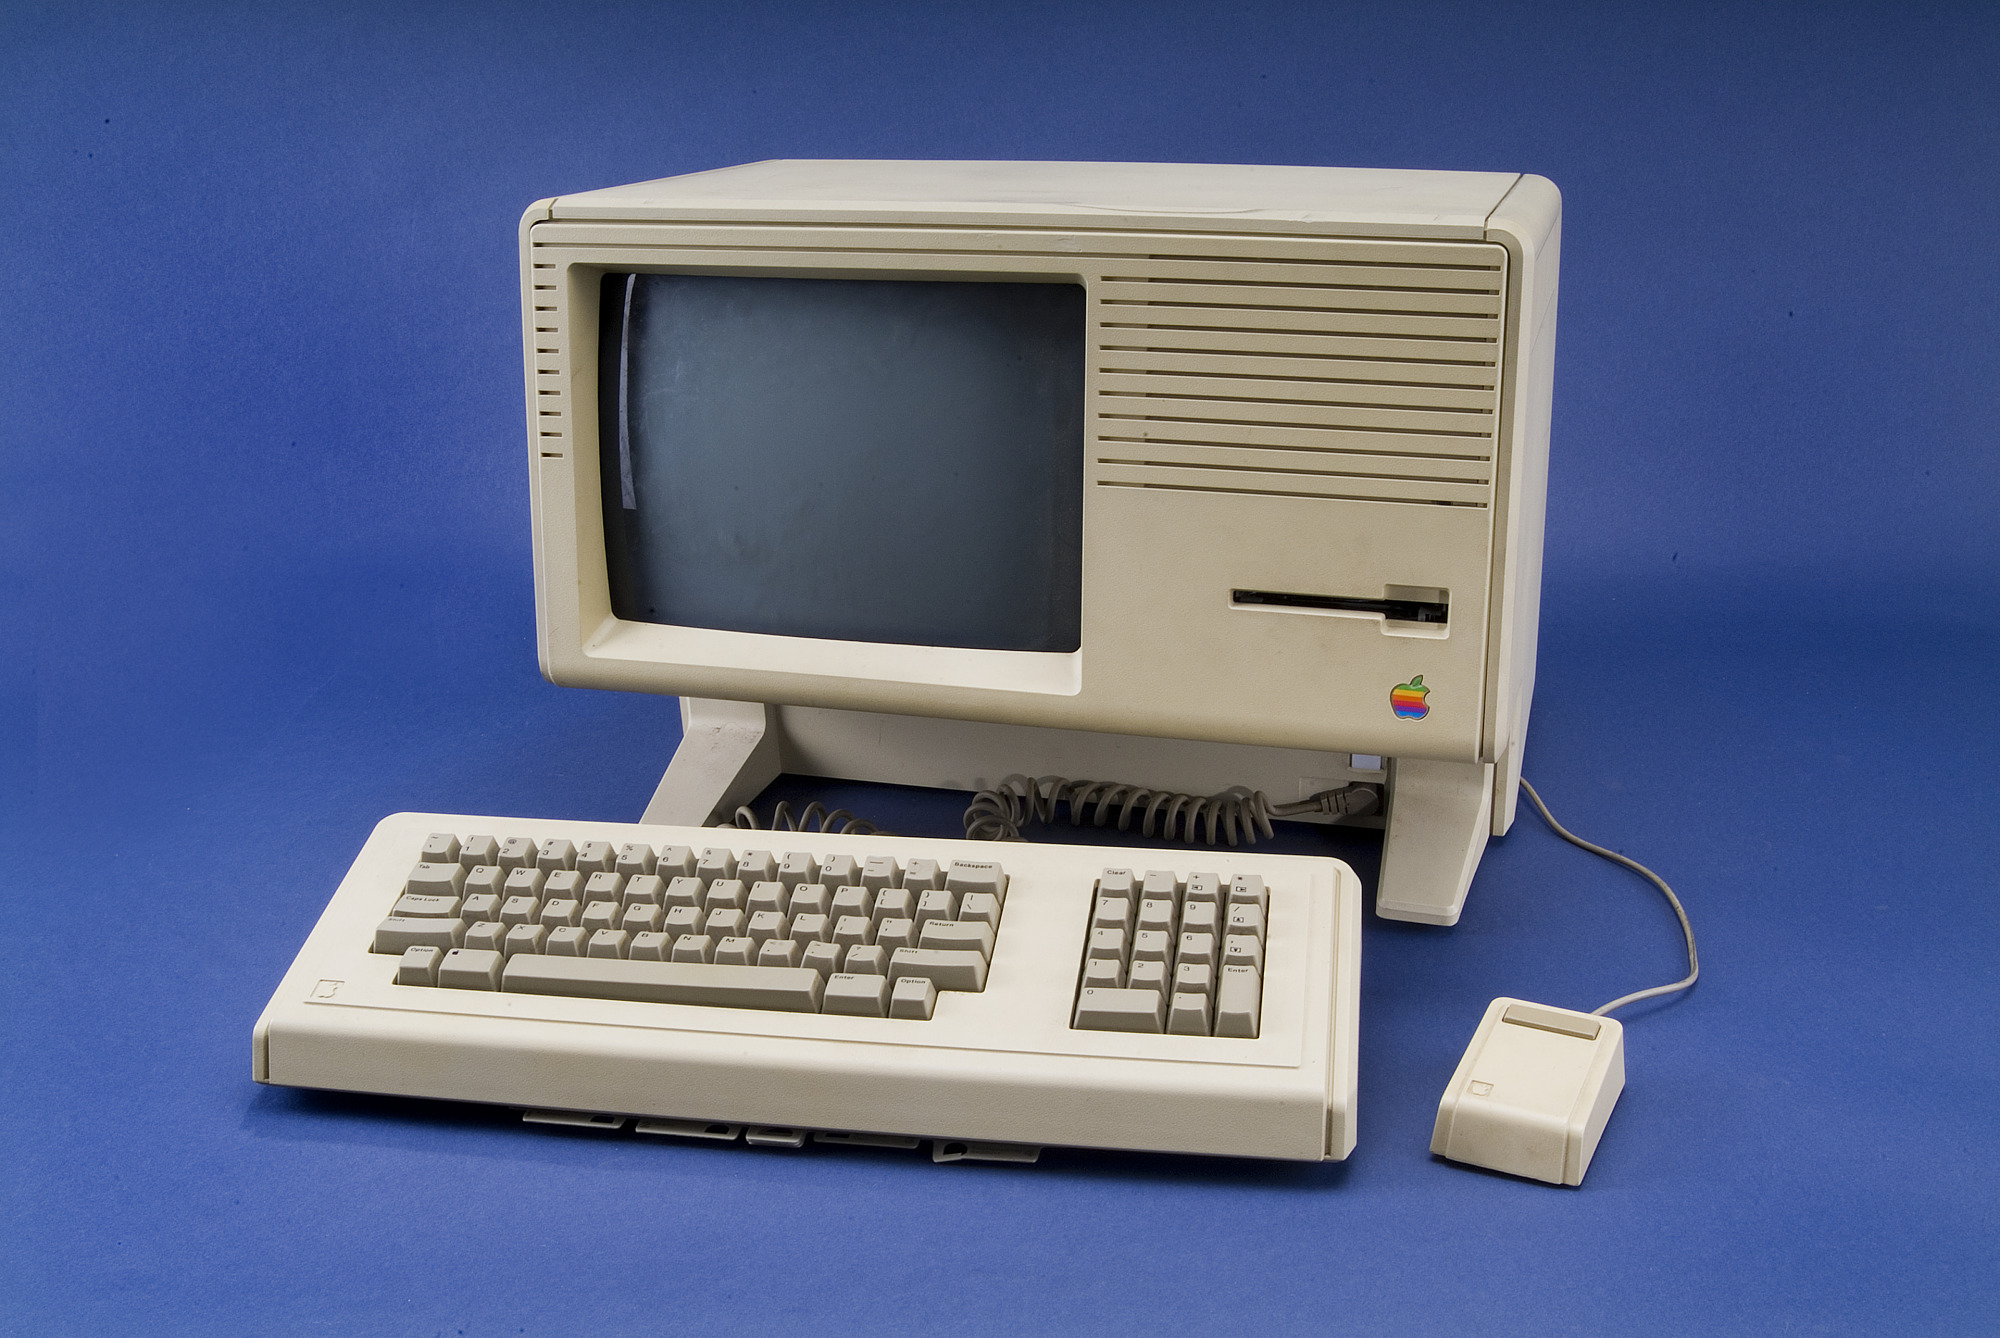 images for Apple Lisa II Personal Computer